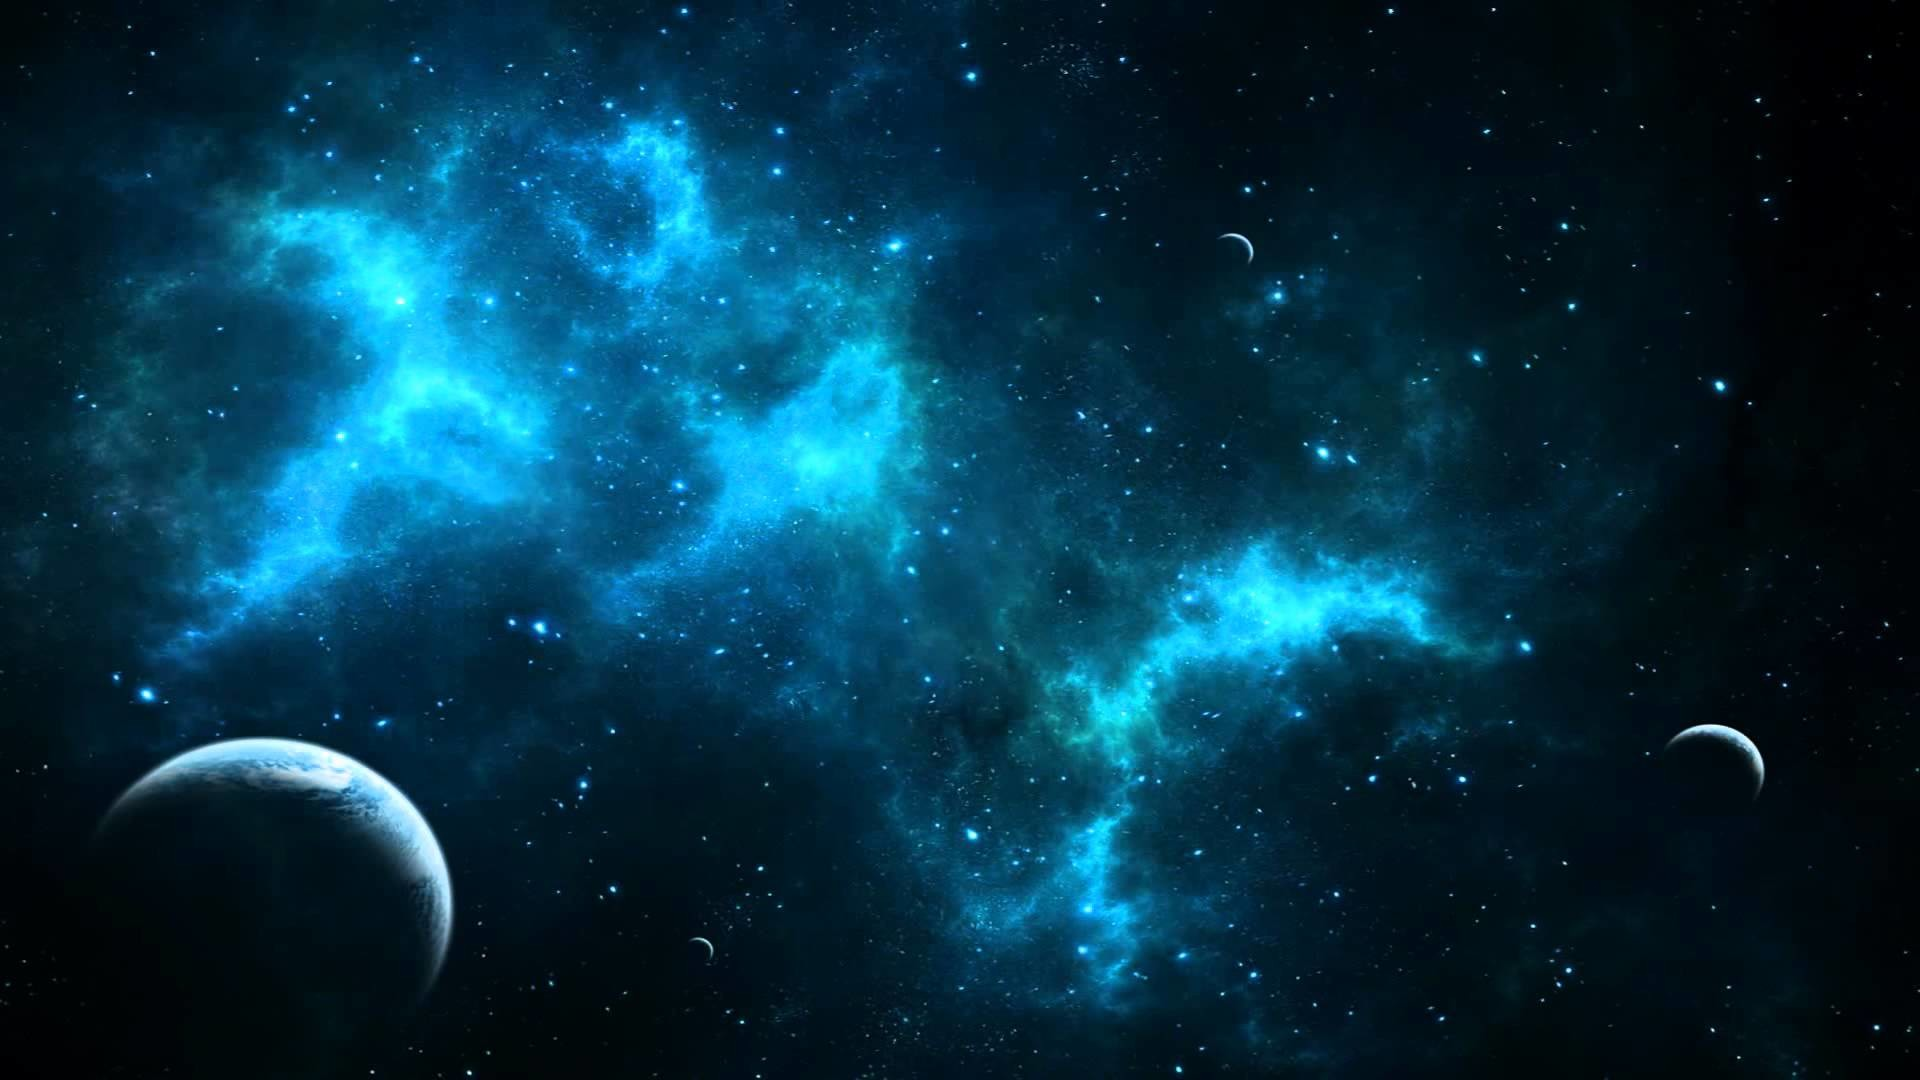 1920x1080 Space Travel Animated Wallpaper http://www.desktopanimated.com - YouTube